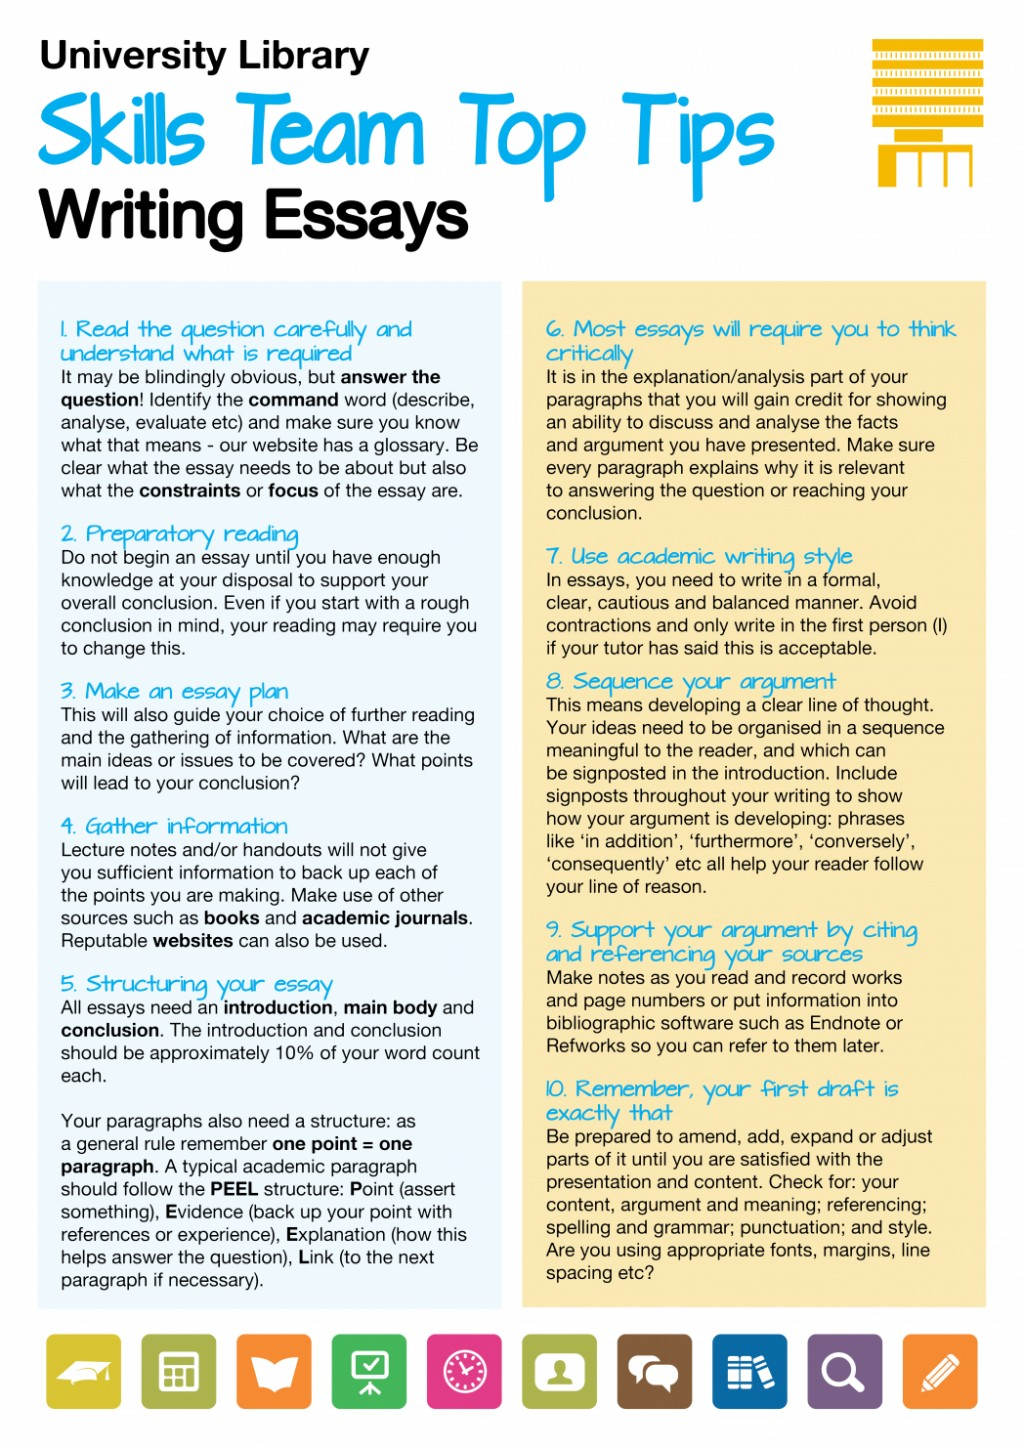 006 Parts Of Persuasive Essay Example Writing Introduction Previewverifierxkjhtnbdqxbvdecrd1zvlvtdue5vyqn13d8 Three Pdf Imposing 6 A Large